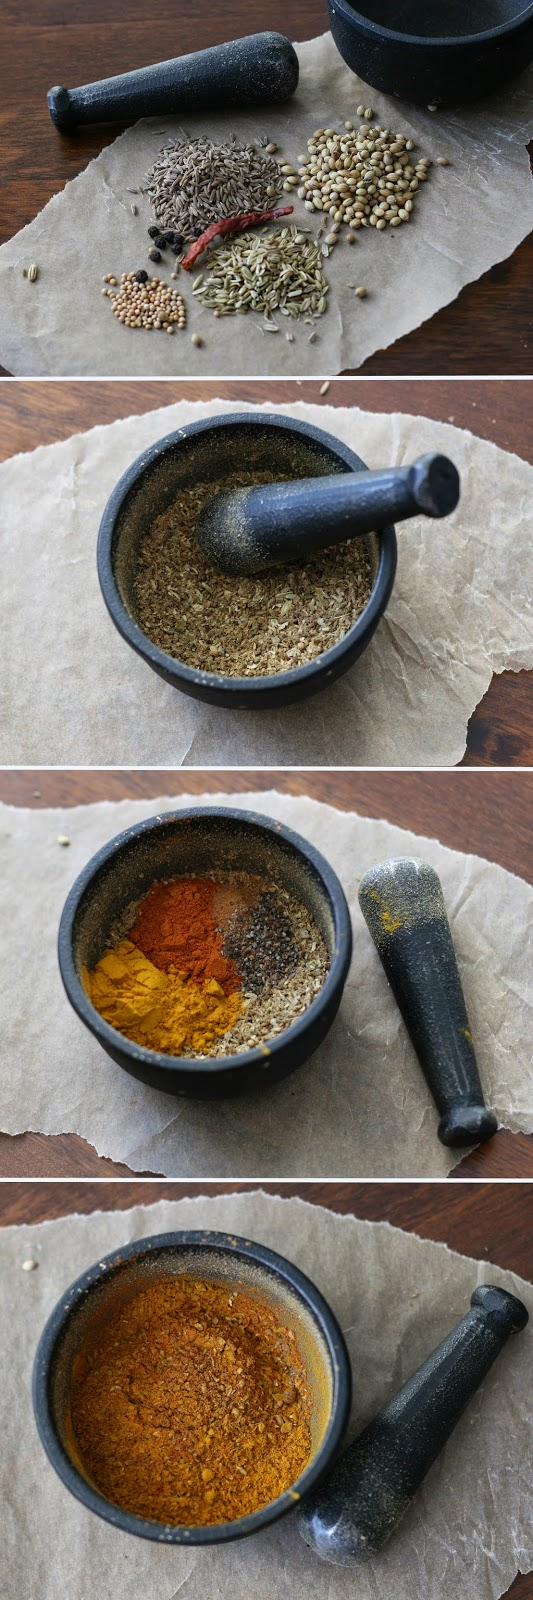 Homemade curry spice mix- by Maikin mokomin